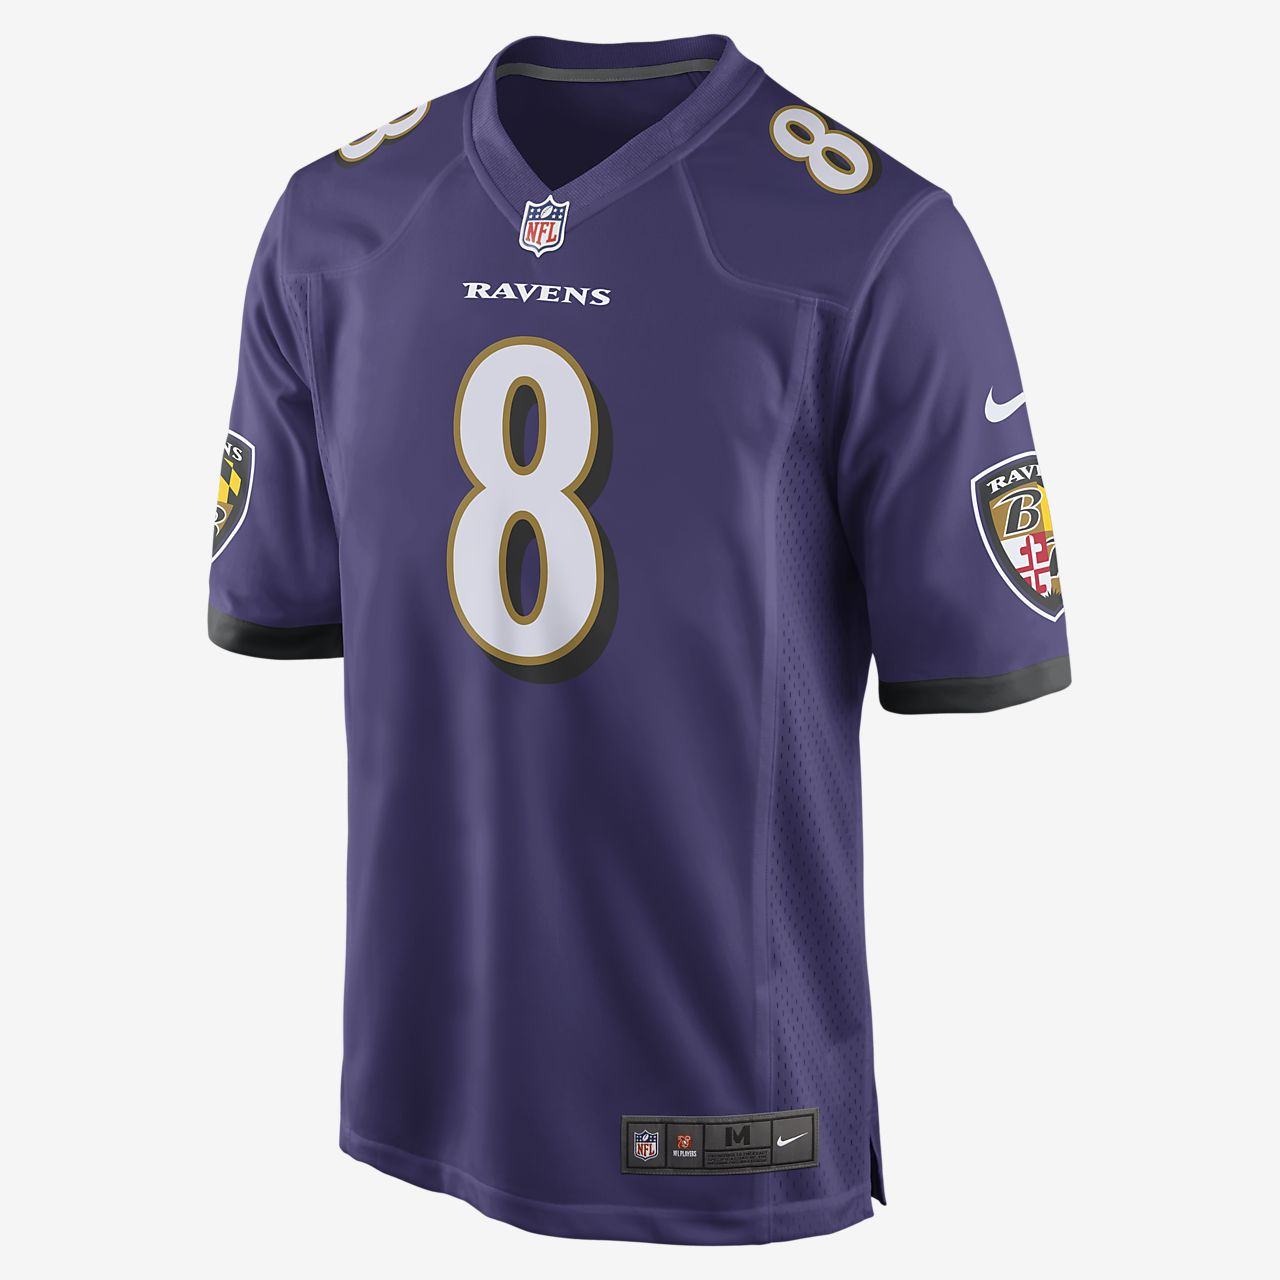 5fe03e47692 NFL Baltimore Ravens Game (Lamar Jackson) Men s Football Jersey ...